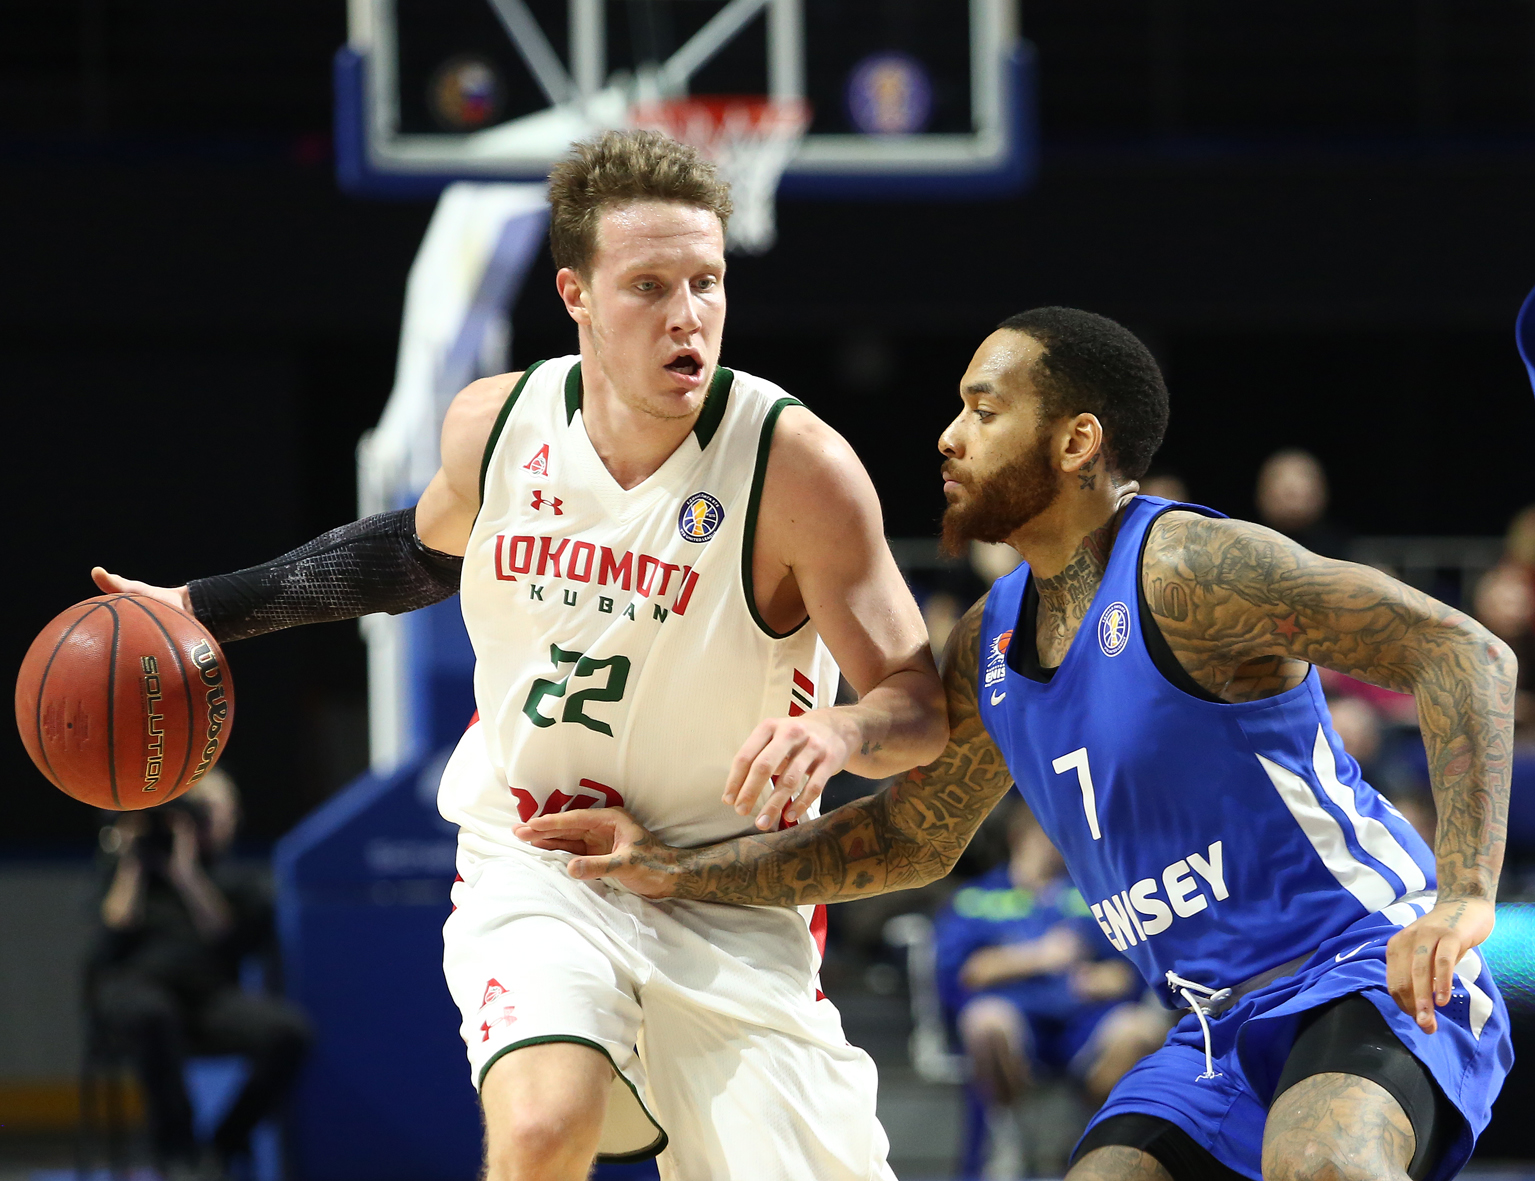 Lokomotiv Rallies Past Enisey In 4th